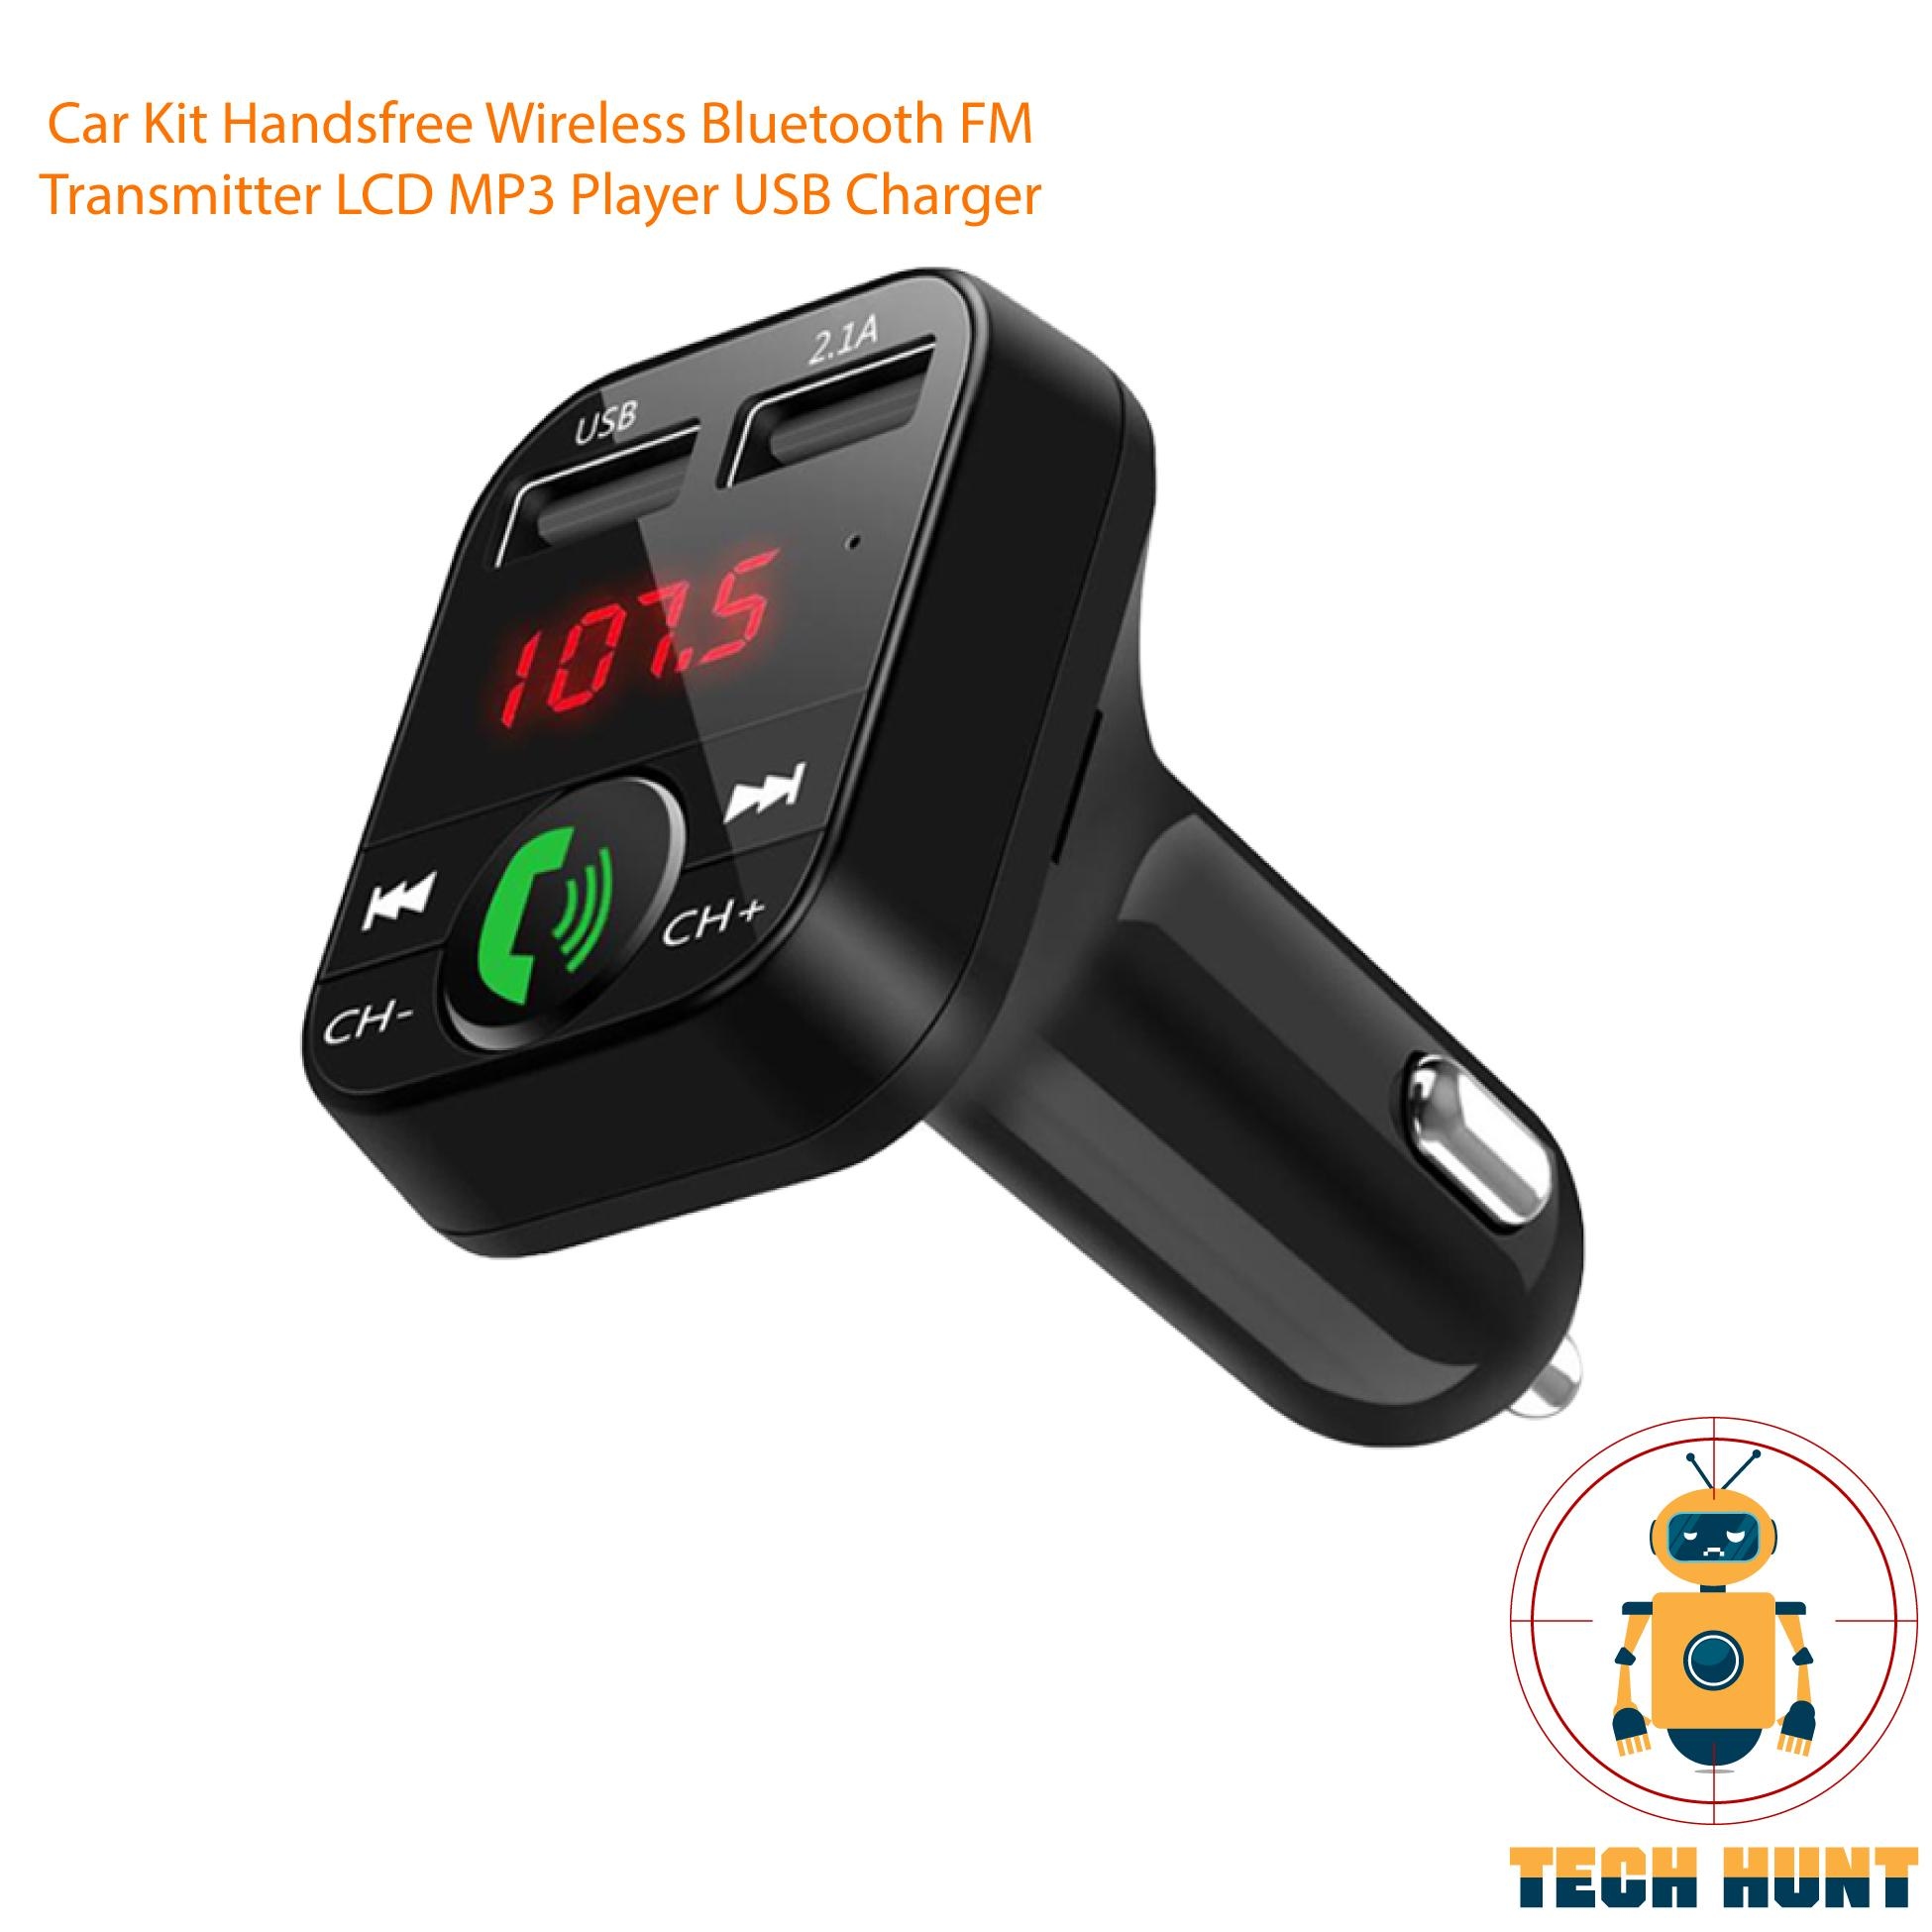 Car Stereo For Sale Cars Online Brands Prices Usbmp3playercircuitdiagram5allcomponentsjpg Kit Handsfree Wireless Bluetooth Fm Transmitter Lcd Mp3 Player Usb Charger Audio